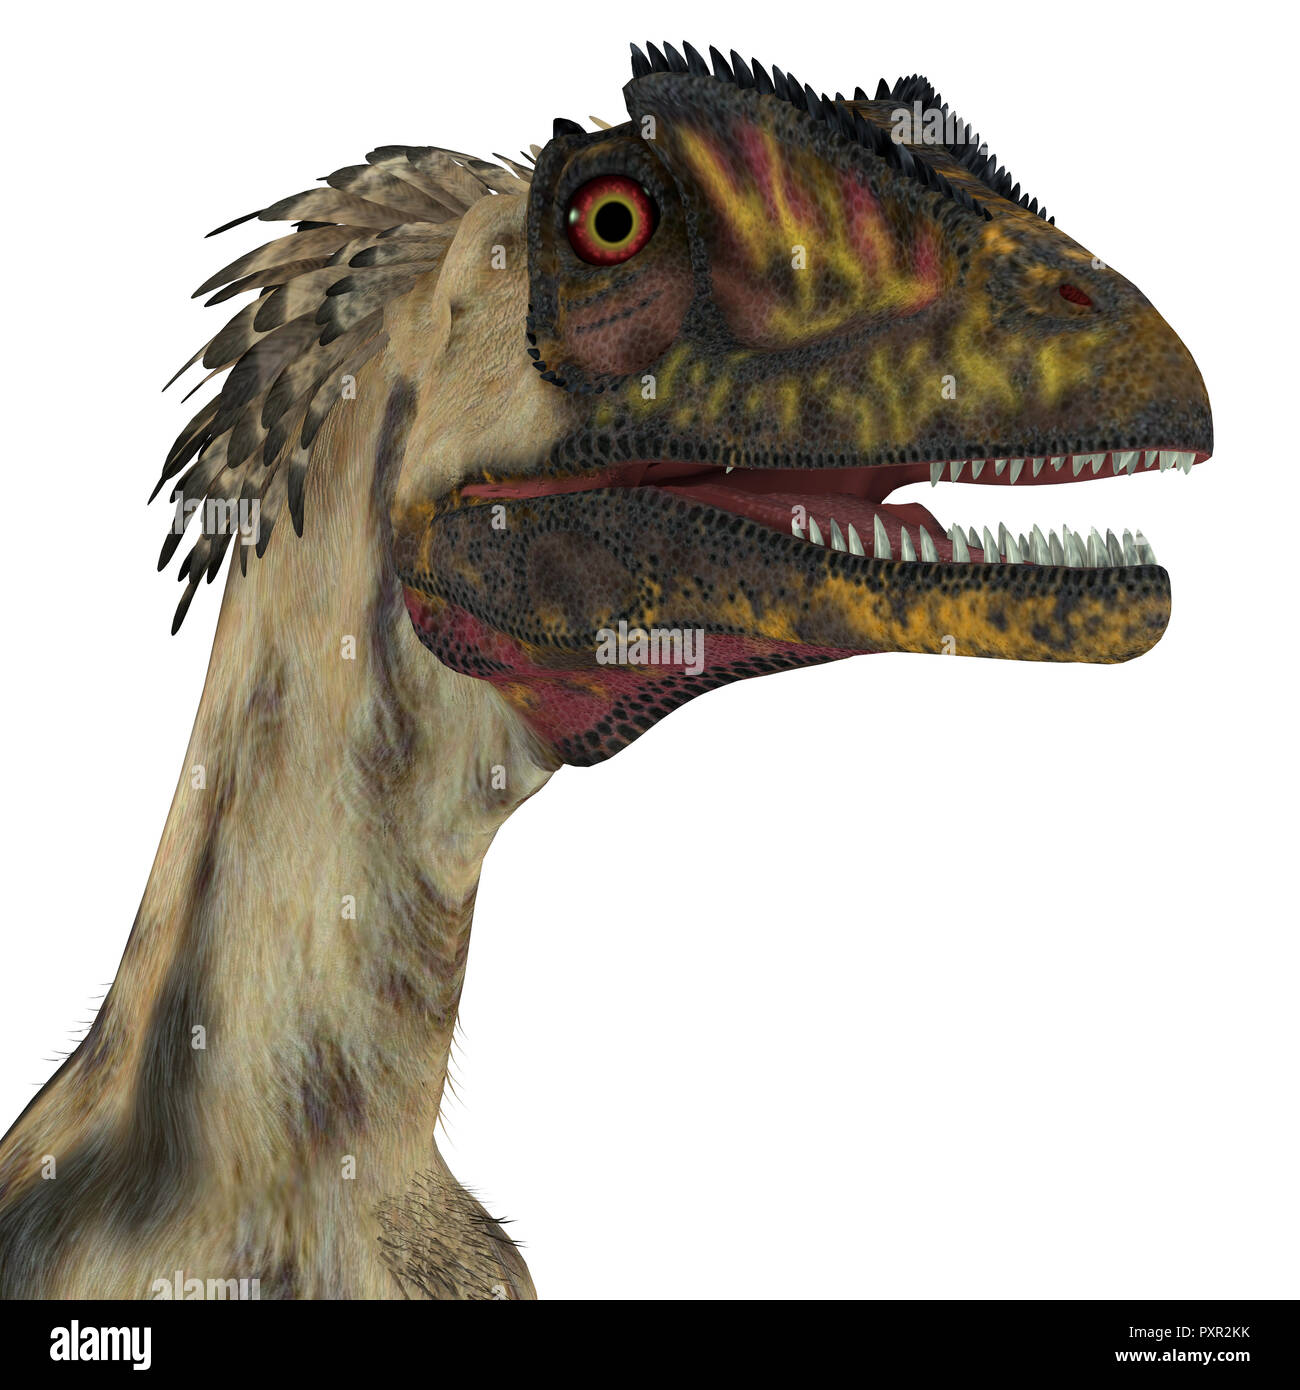 Deinonychus Dinosaur Head - Deinonychus was a carnivorous theropod dinosaur that lived in North America during the Cretaceous Period. - Stock Image